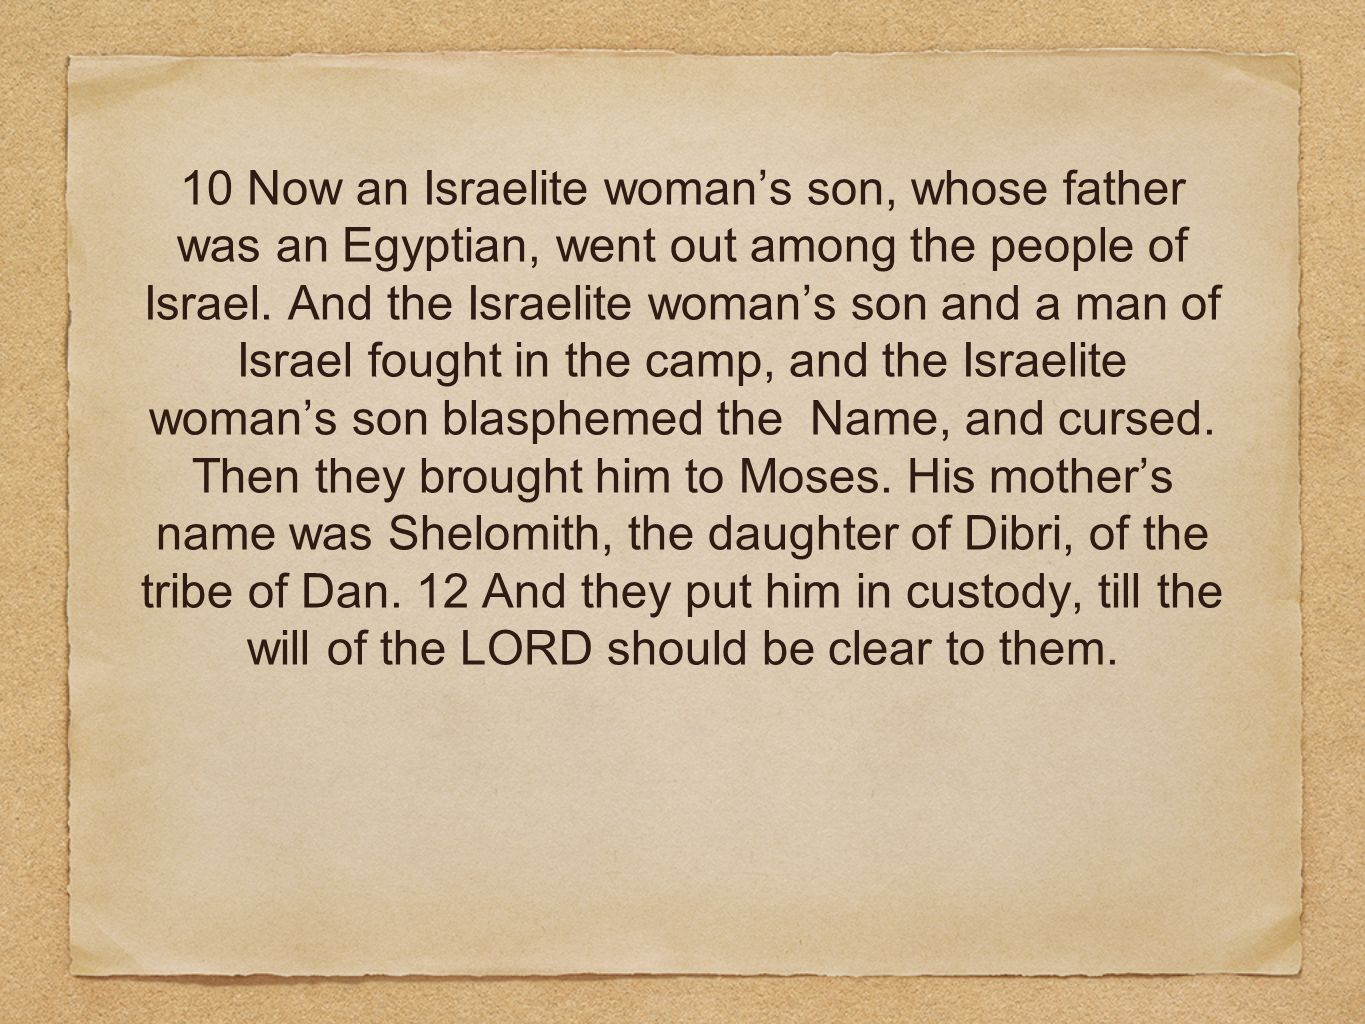 10 Now an Israelite womans son, whose father was an Egyptian, went out among the people of Israel.